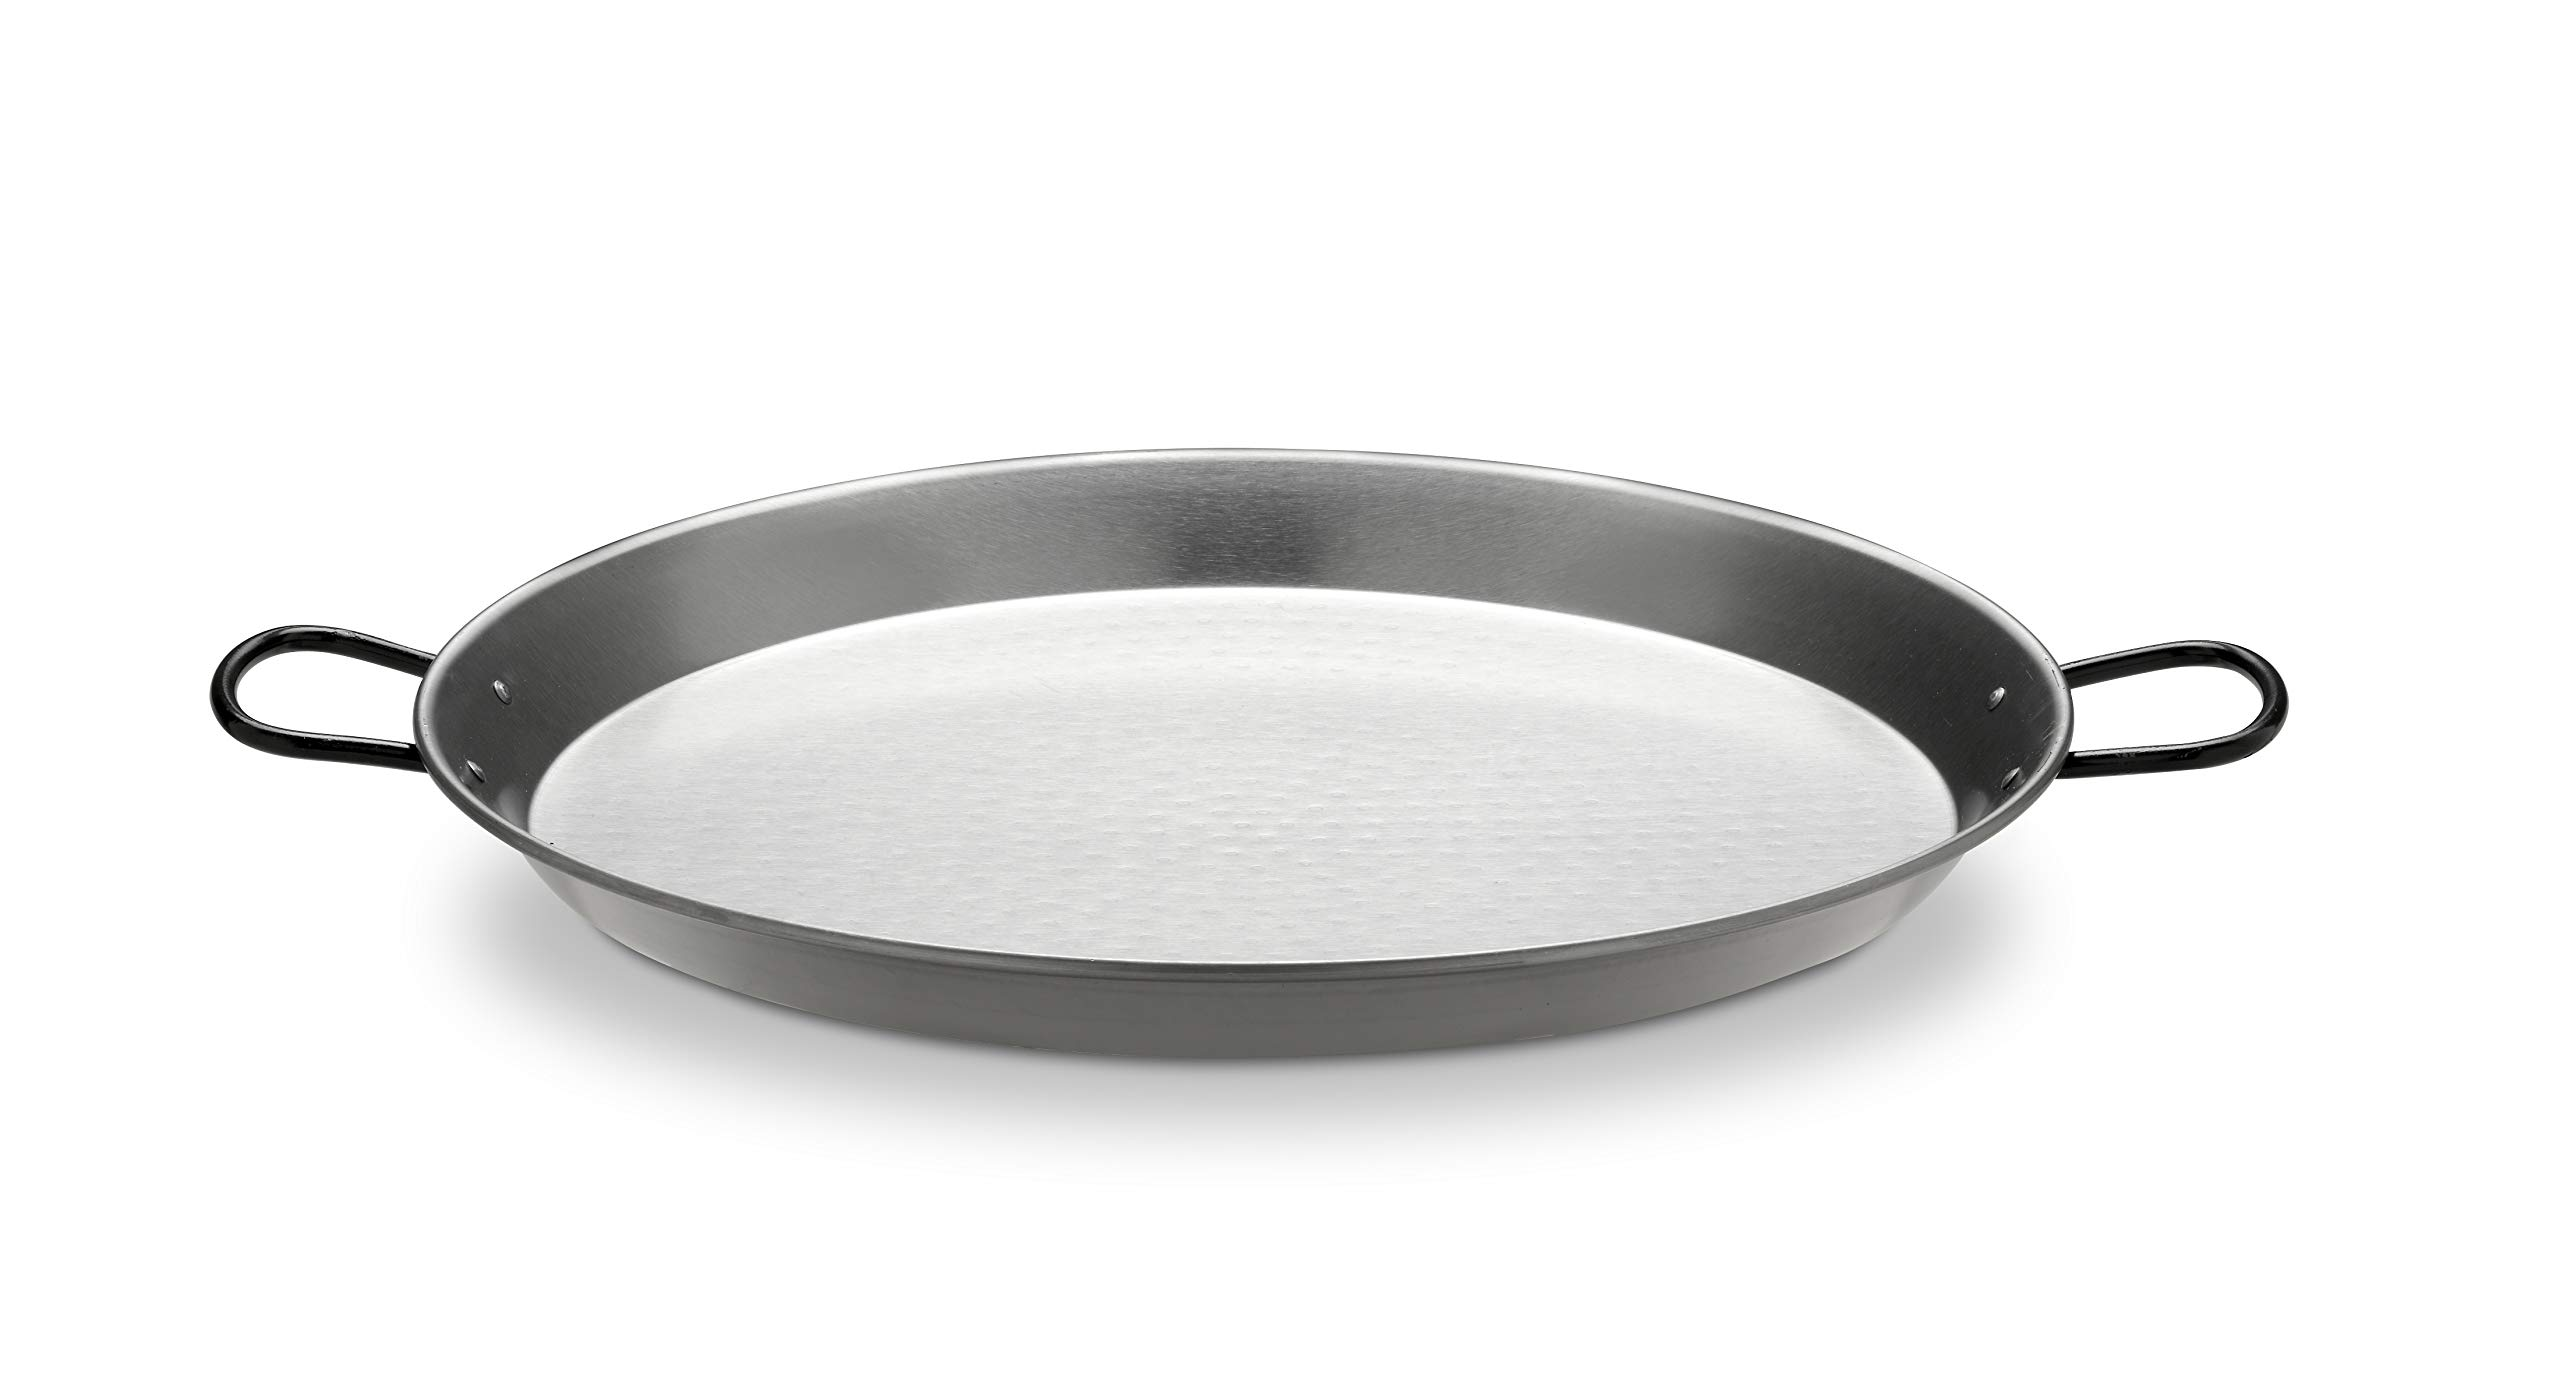 Paella pan Polished Steel 22Inches / 55cm / up to 16 Servings /